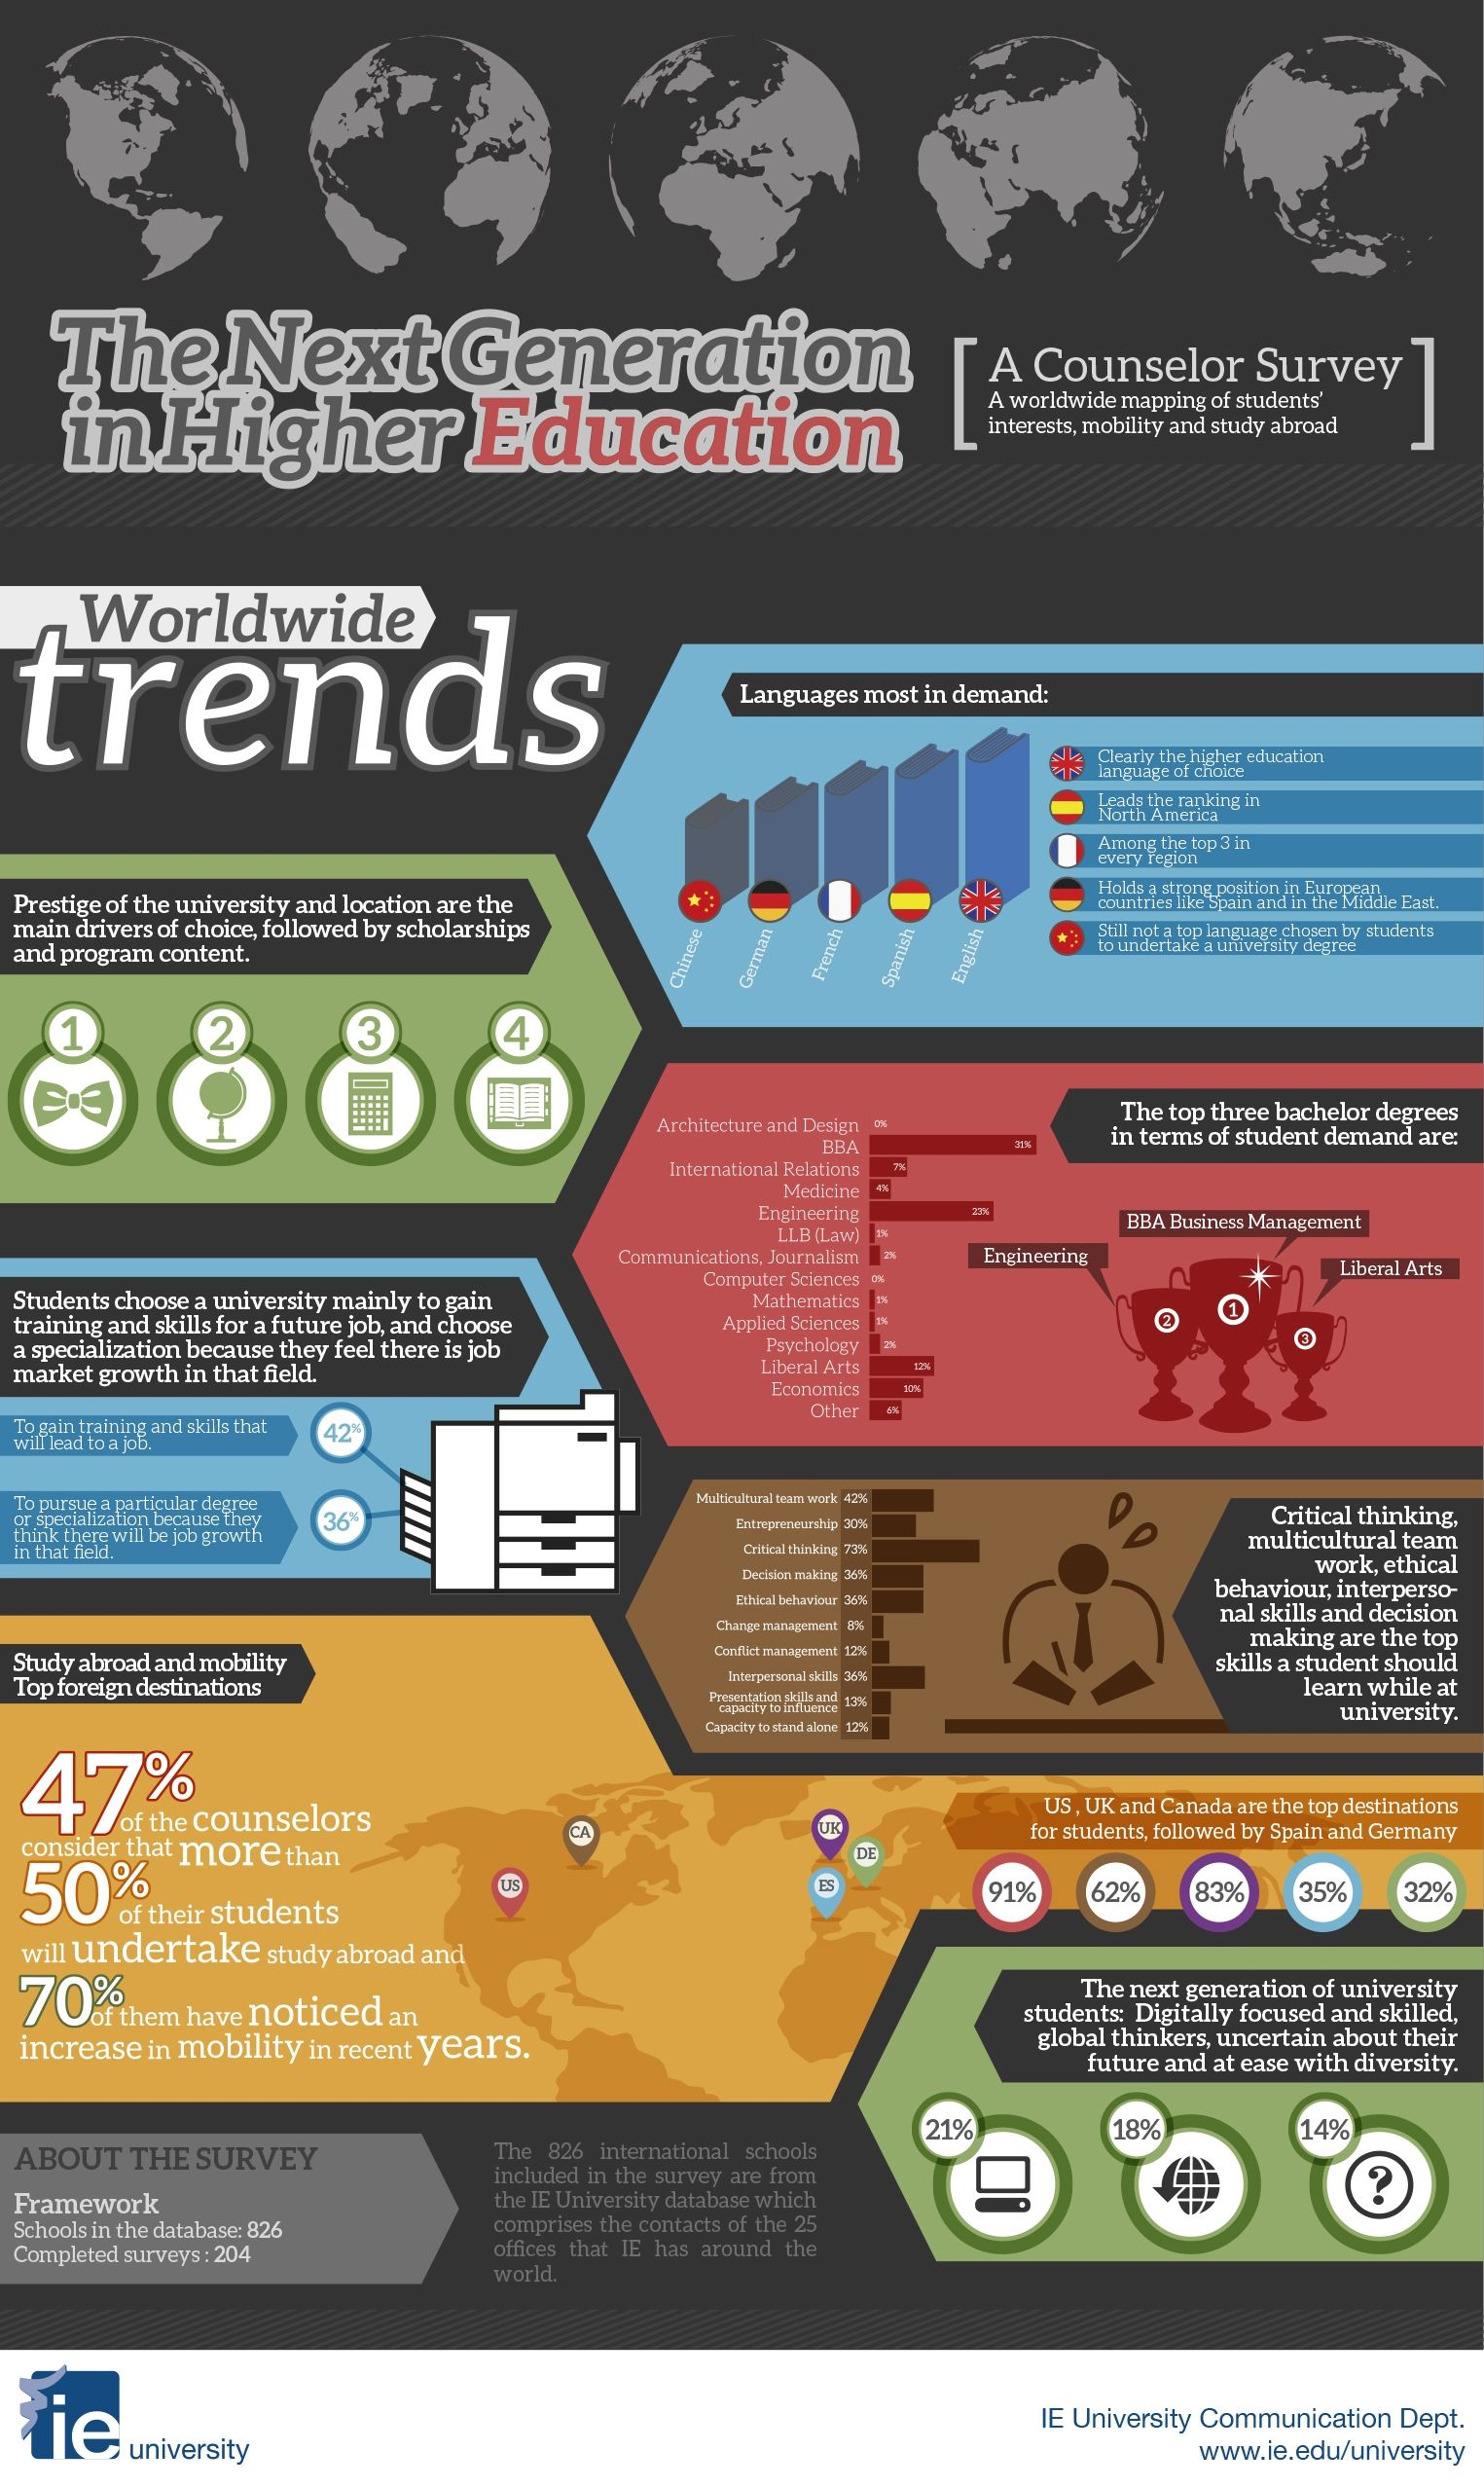 Worldwide Trends In Higher Education #infographic